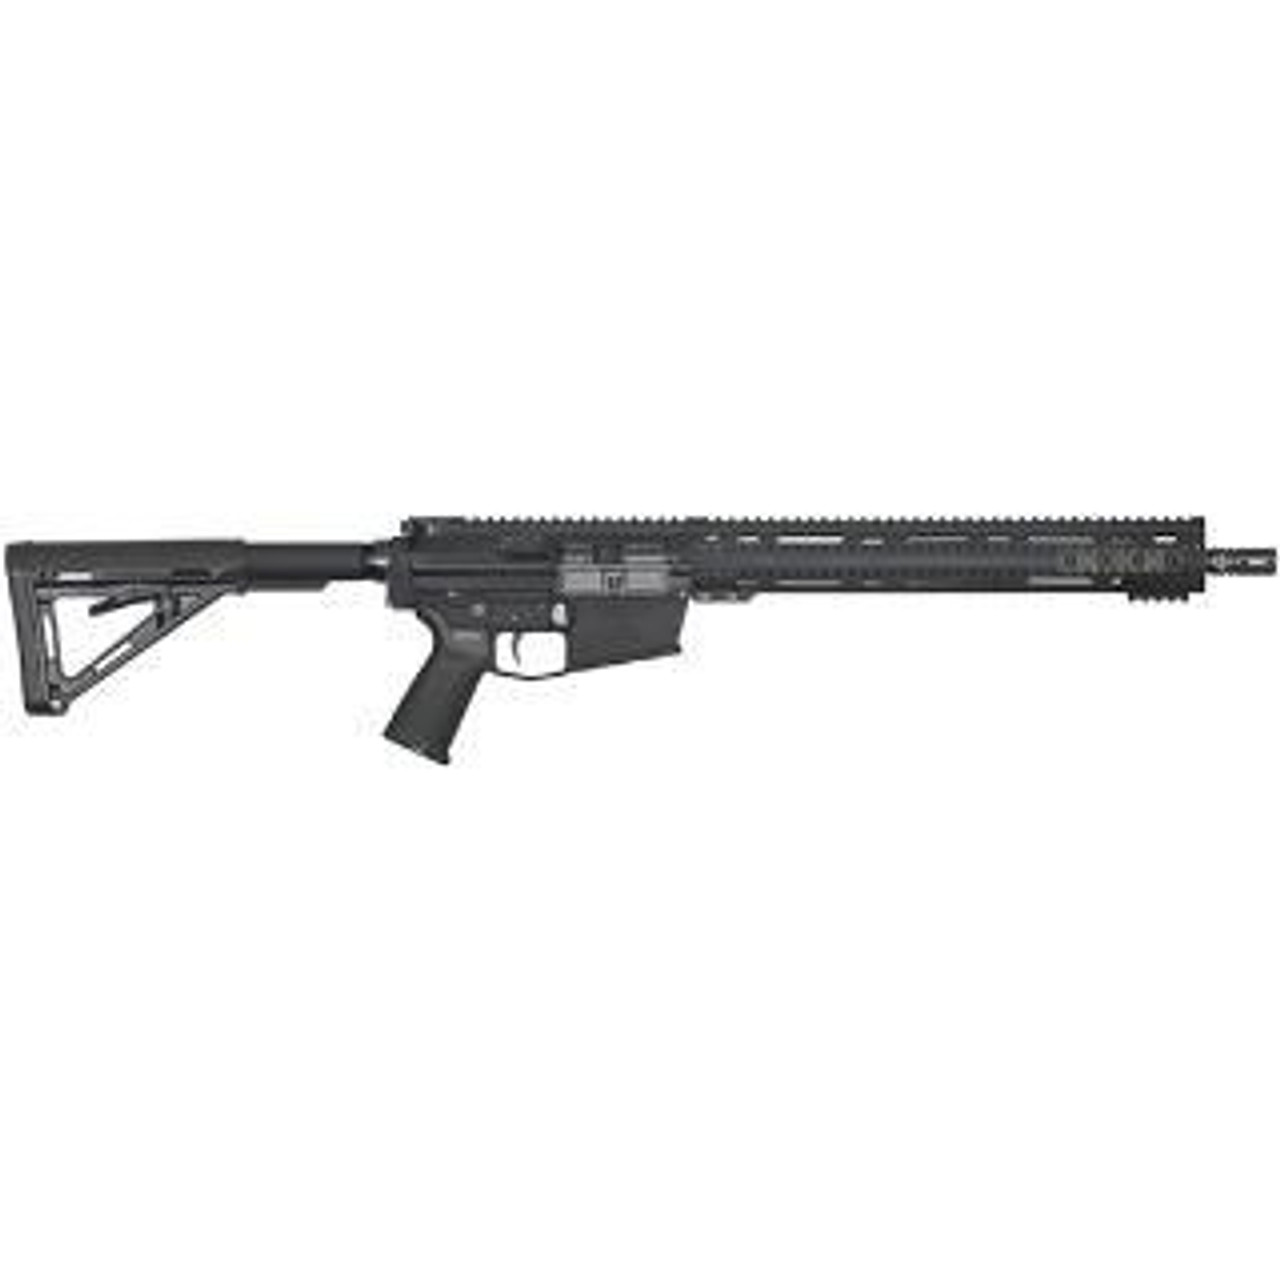 APF 308 Carbine CALIFORNIA LEGAL With- .308/7.62x51